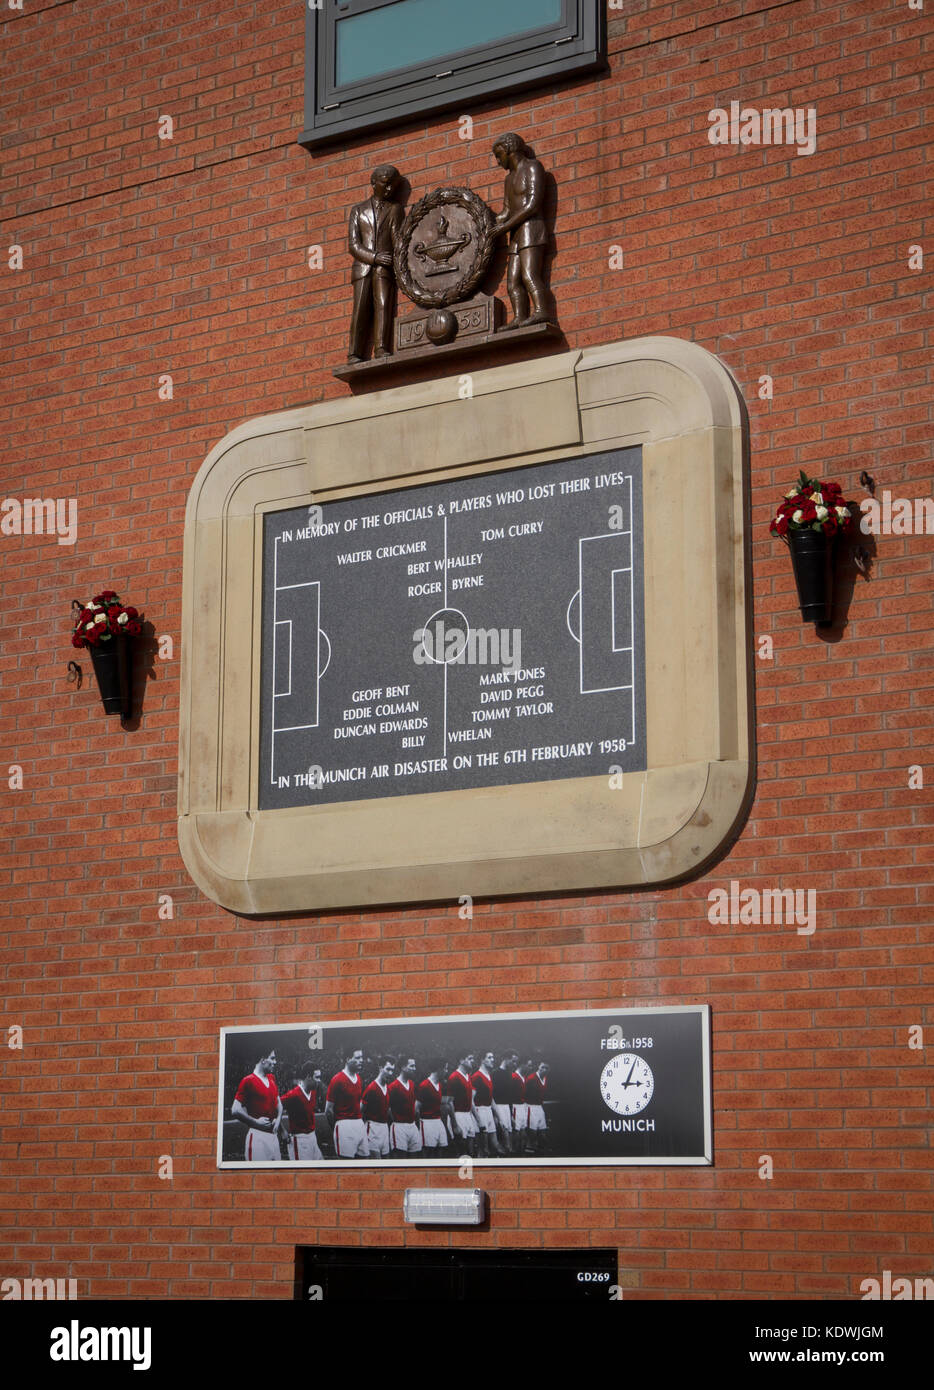 Memorial at Old Trafford Football Stadium for the Munich Air Disaster - Stock Image